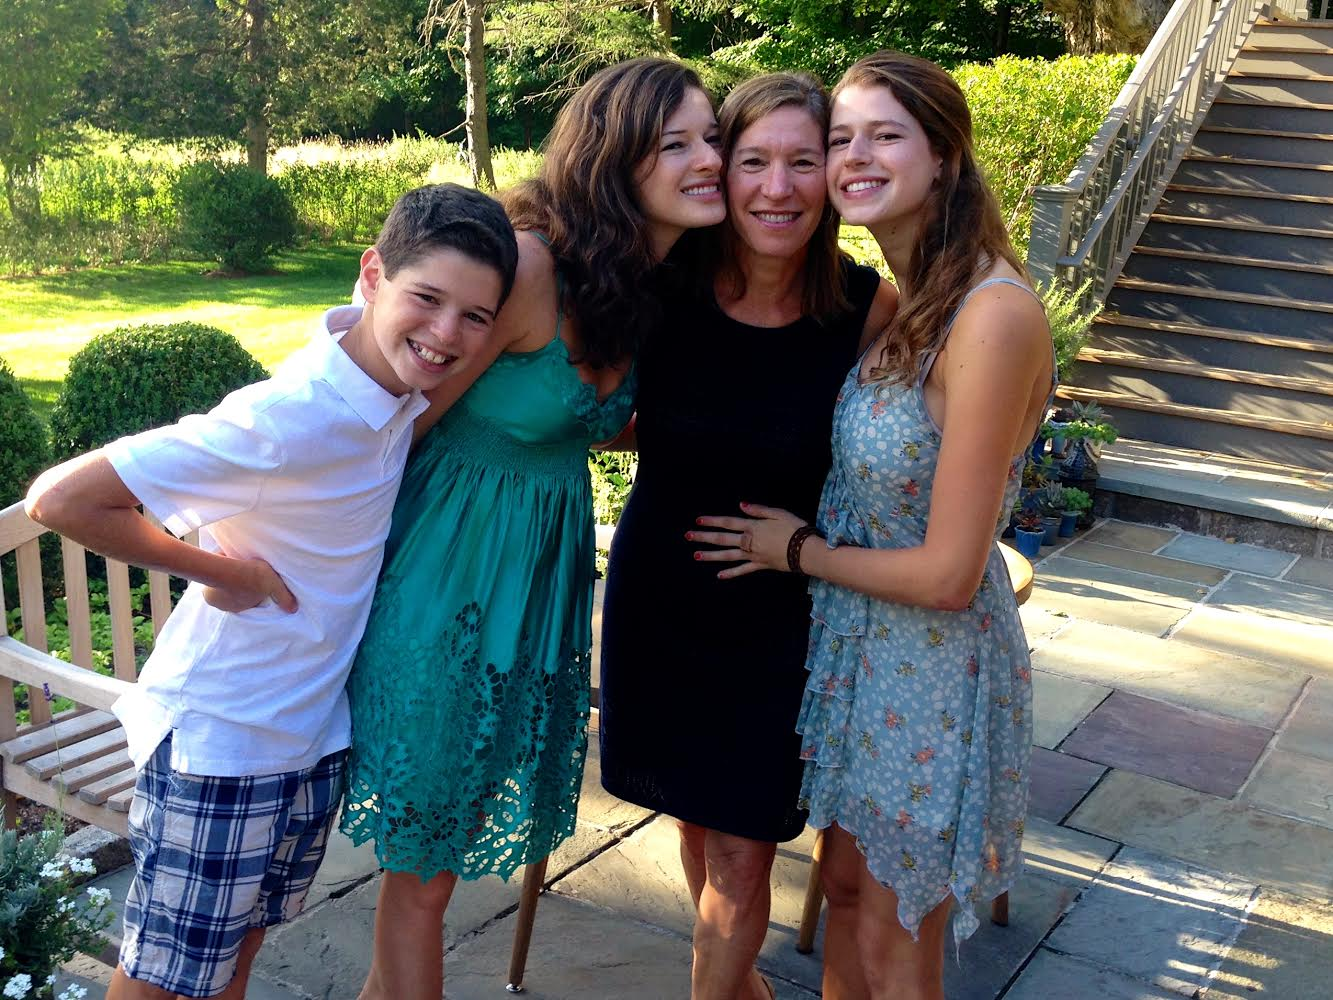 Caren and her three children, from left to right, Simon, Nicole, and Emily.